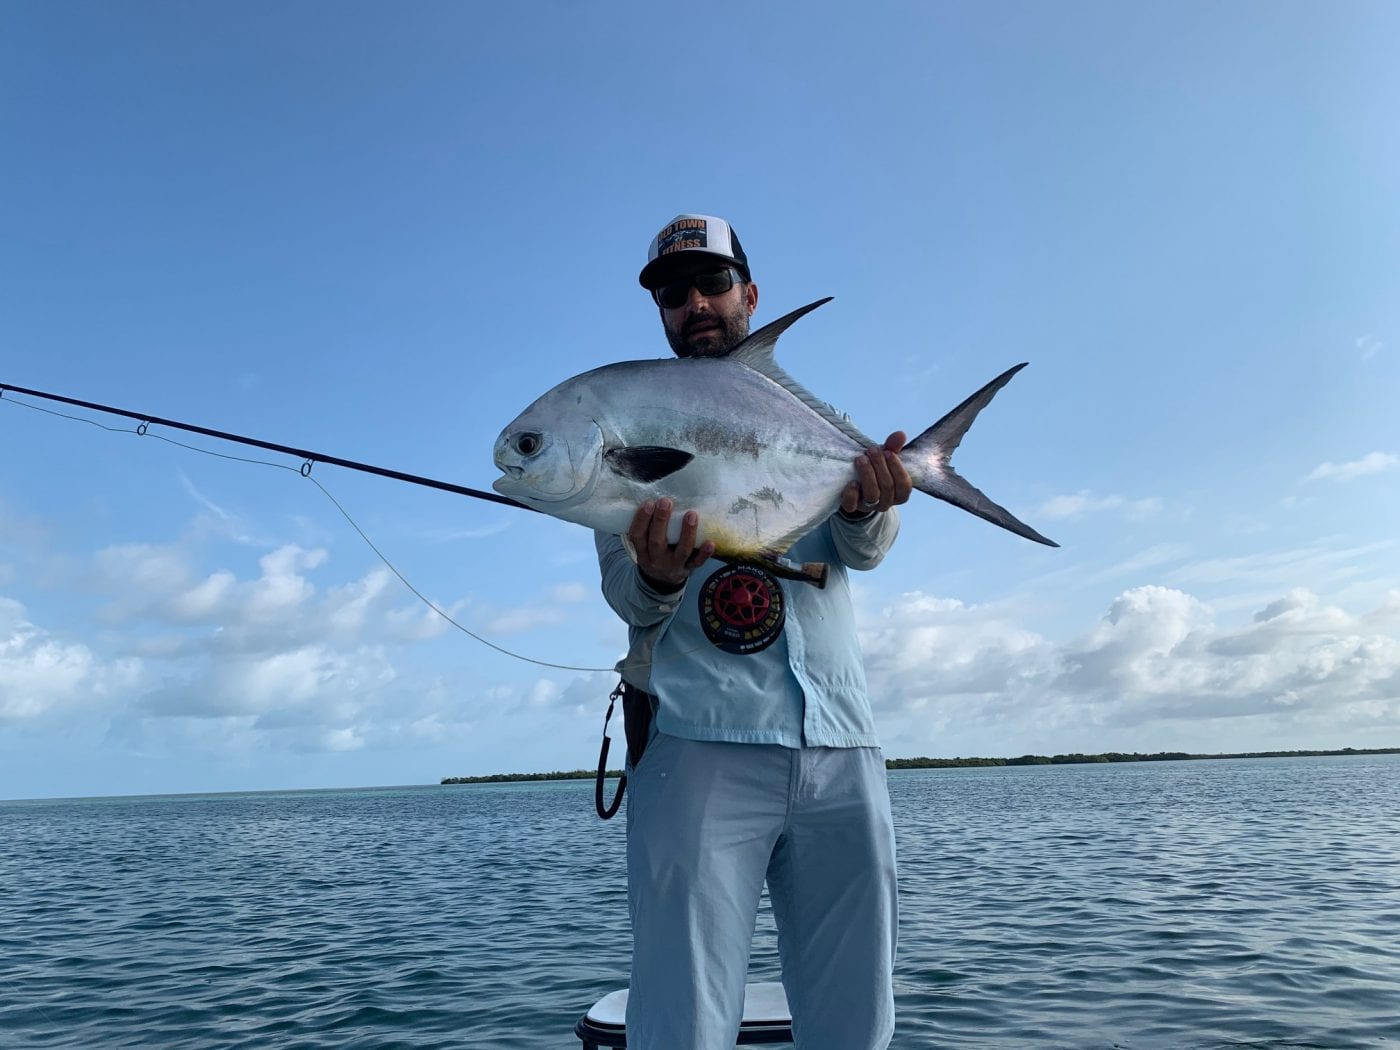 Another permit, photo/guiding Nick Labadie